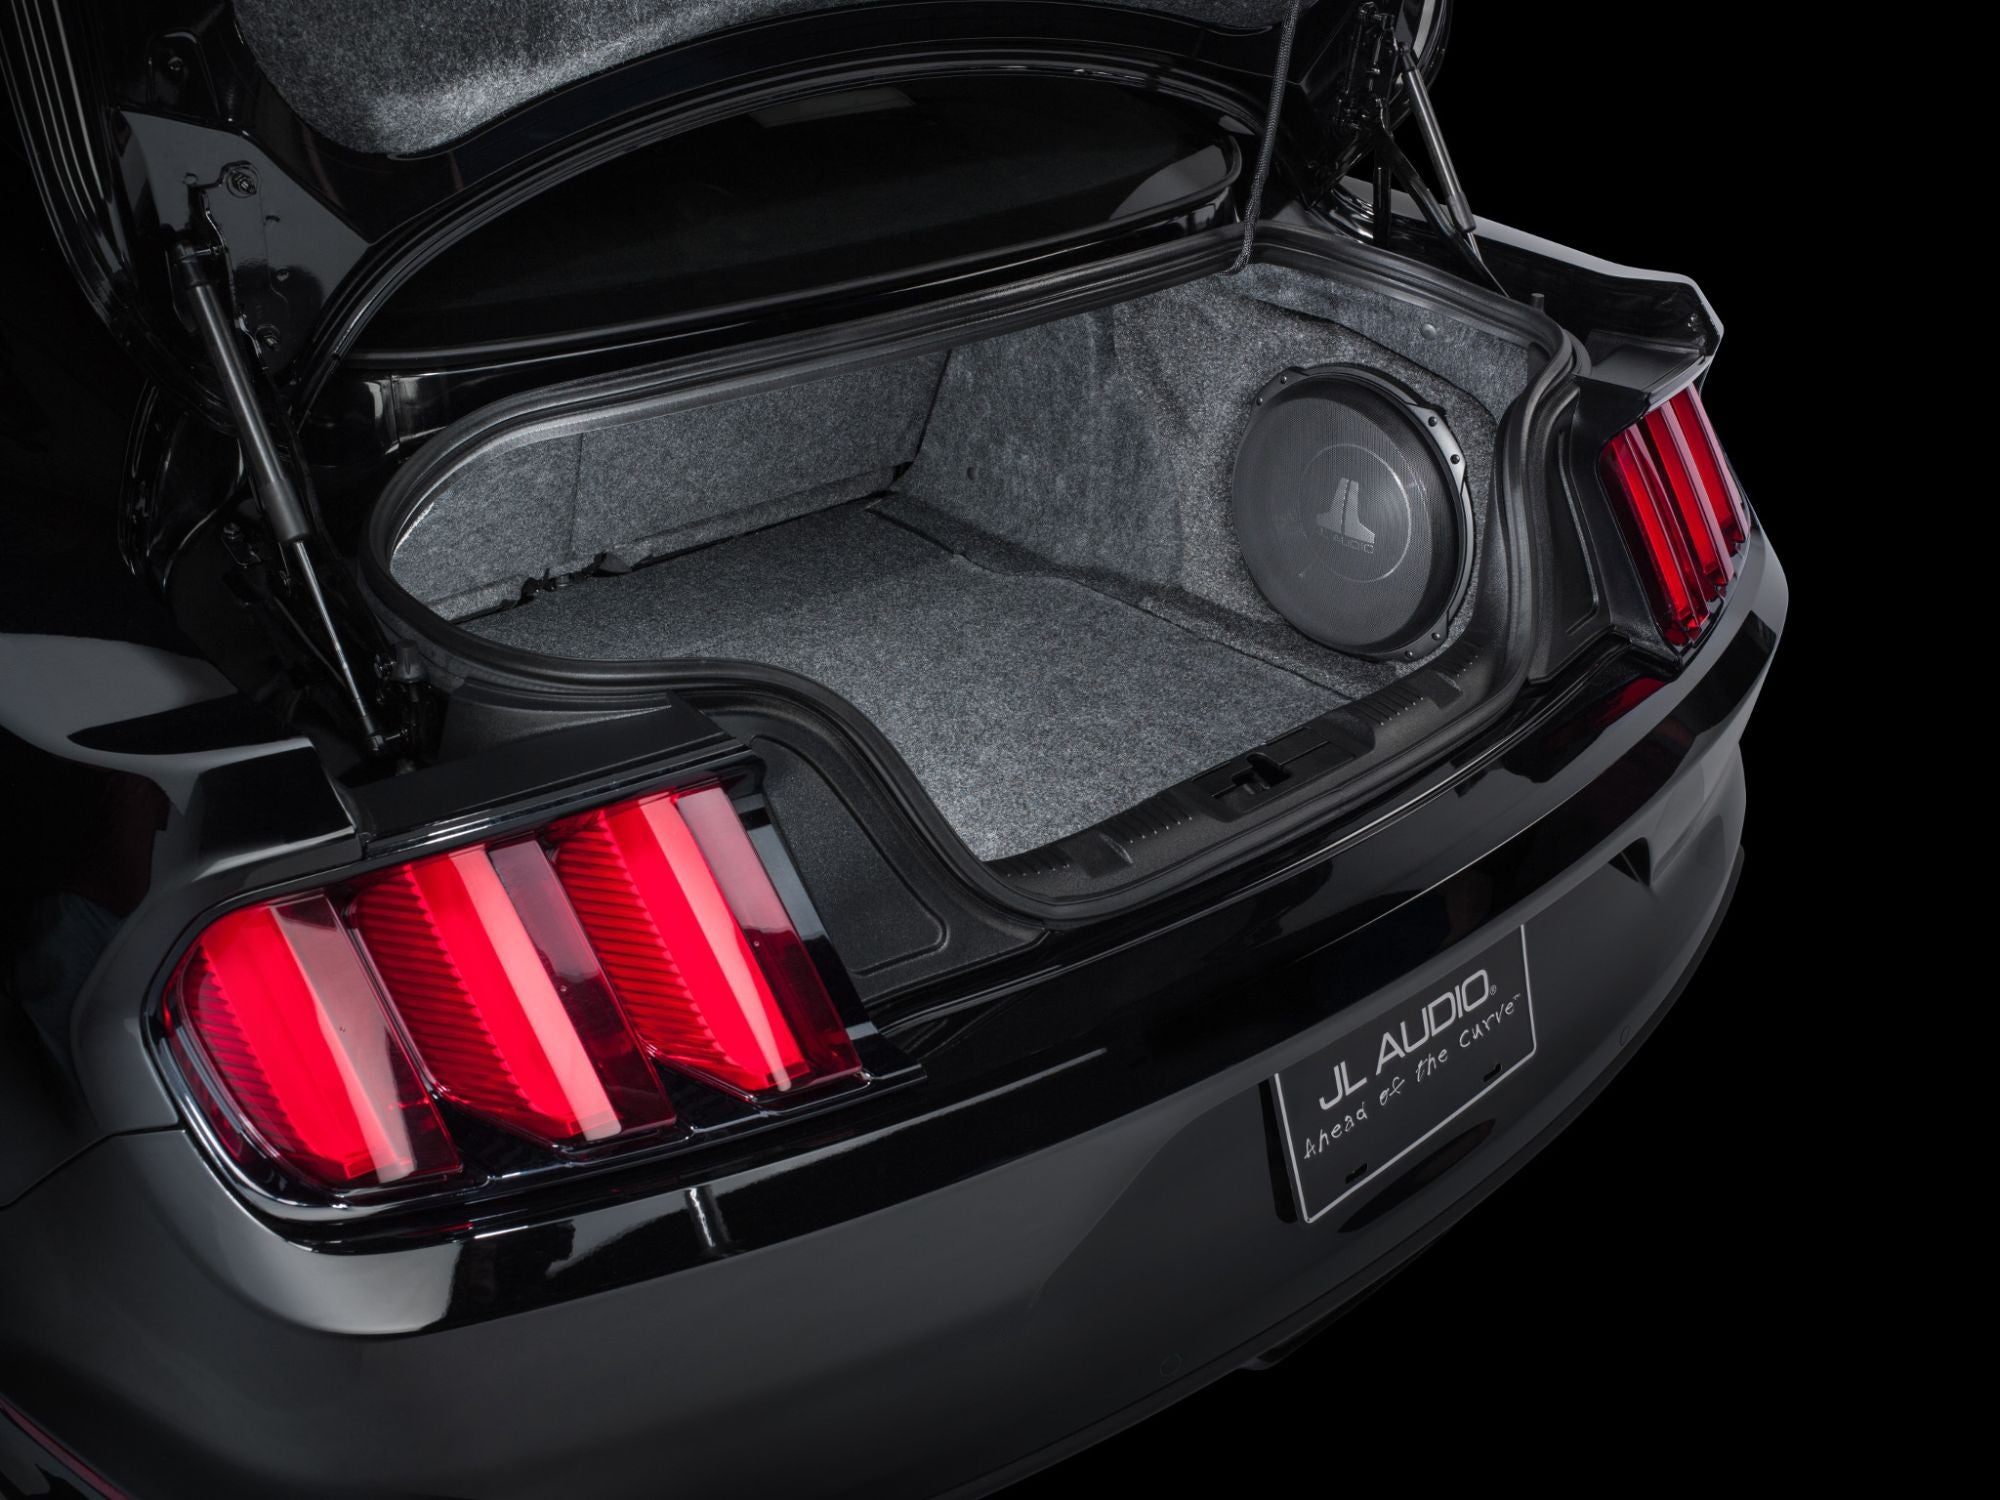 SB-F-MUSCPE-12TW3 Stealthbox Installed in Vehicle